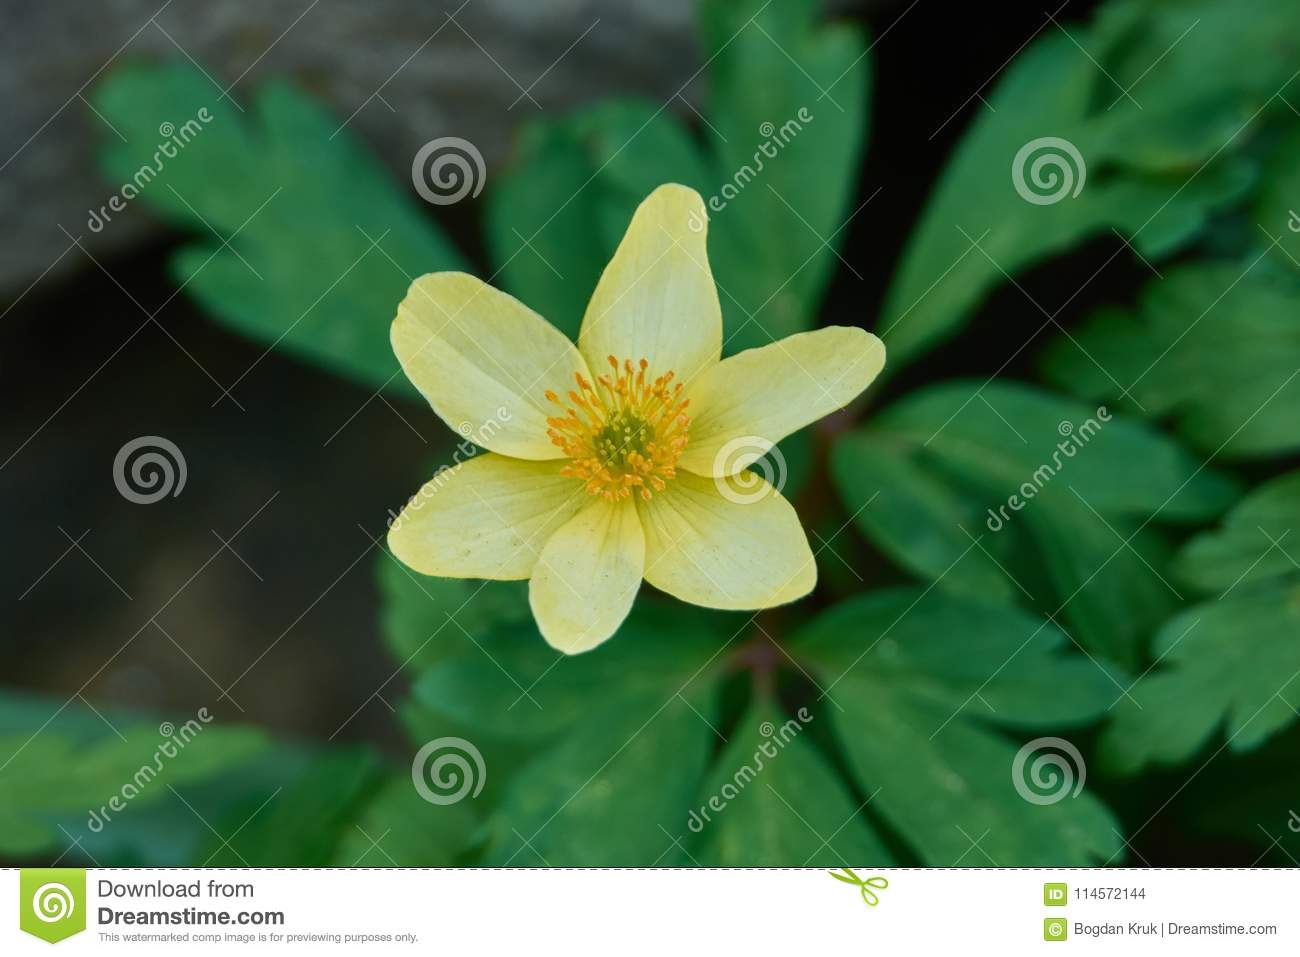 A Closeup Of A Yellow Anemone Flower Stock Photo Image Of Botany